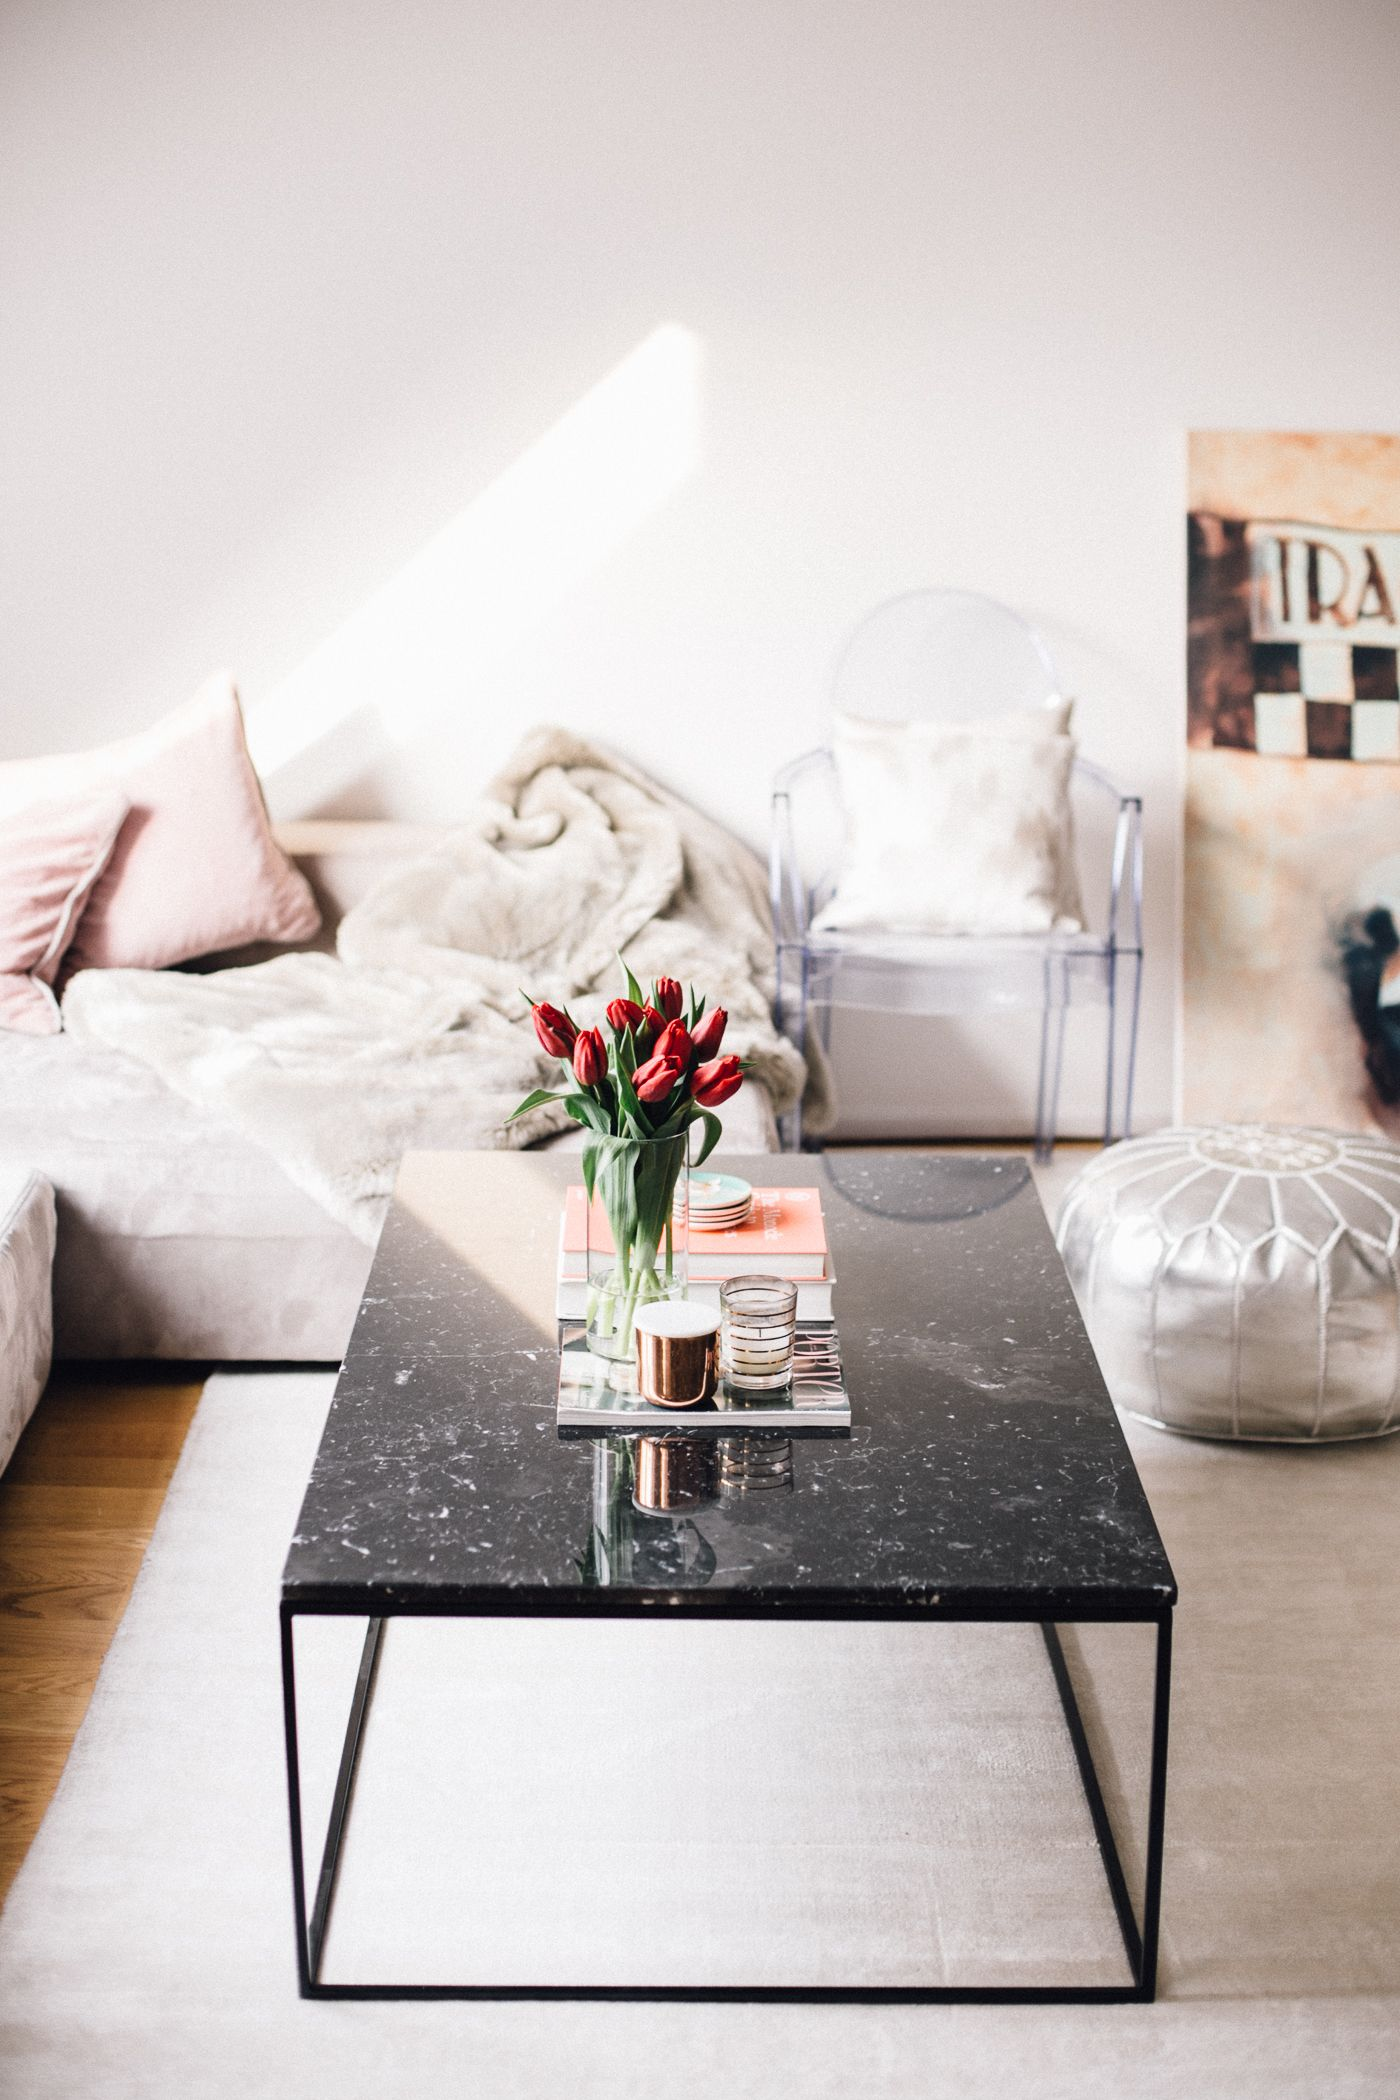 Smart Round Black Marble Coffee Table Reviews Cb2 In 2020 Black Marble Coffee Table Marble Coffee Table Coffee Table